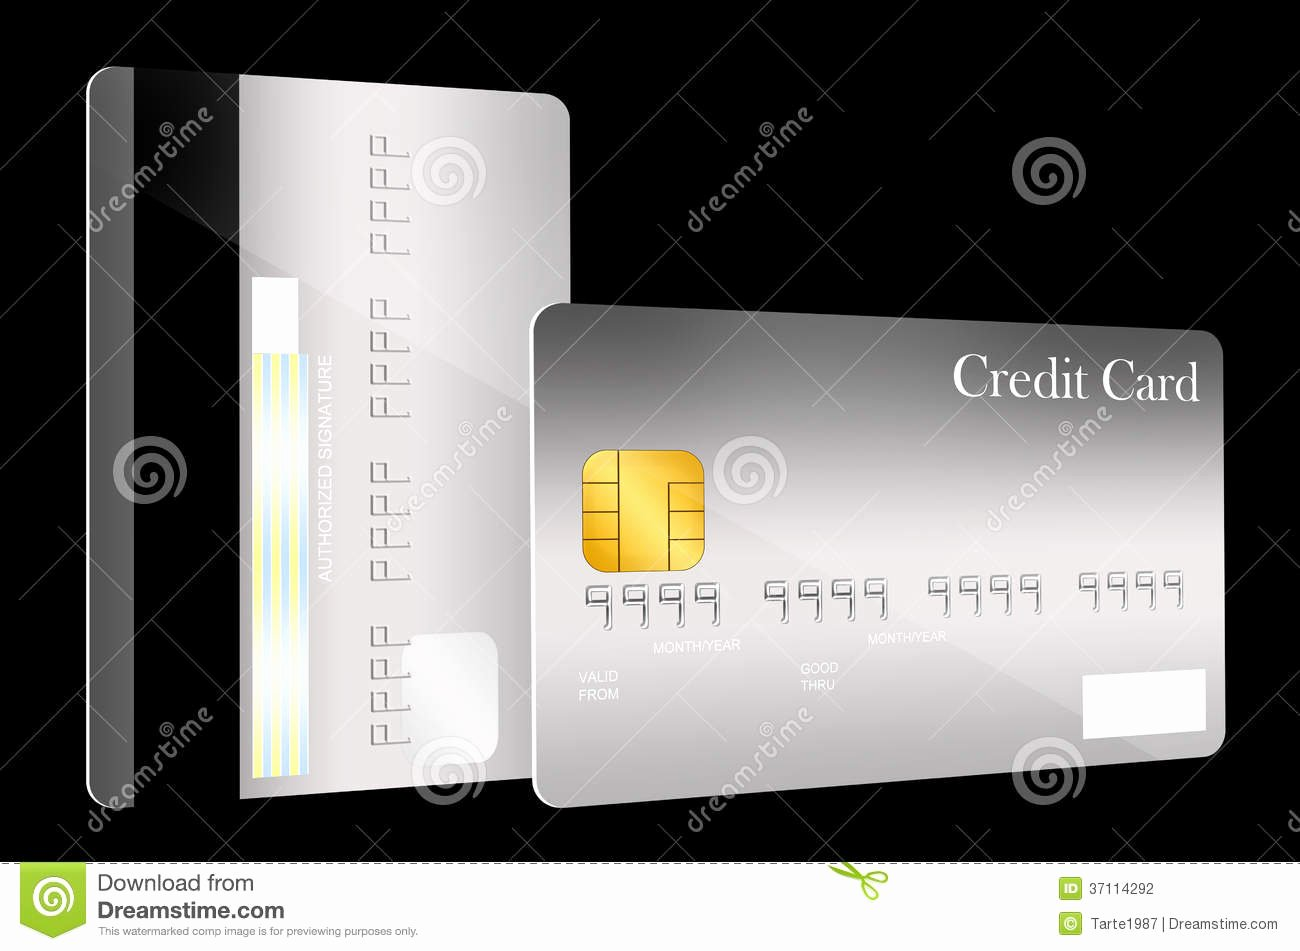 Blank Credit Card Template Fresh Front and Back Credit Card Template Stock Illustration